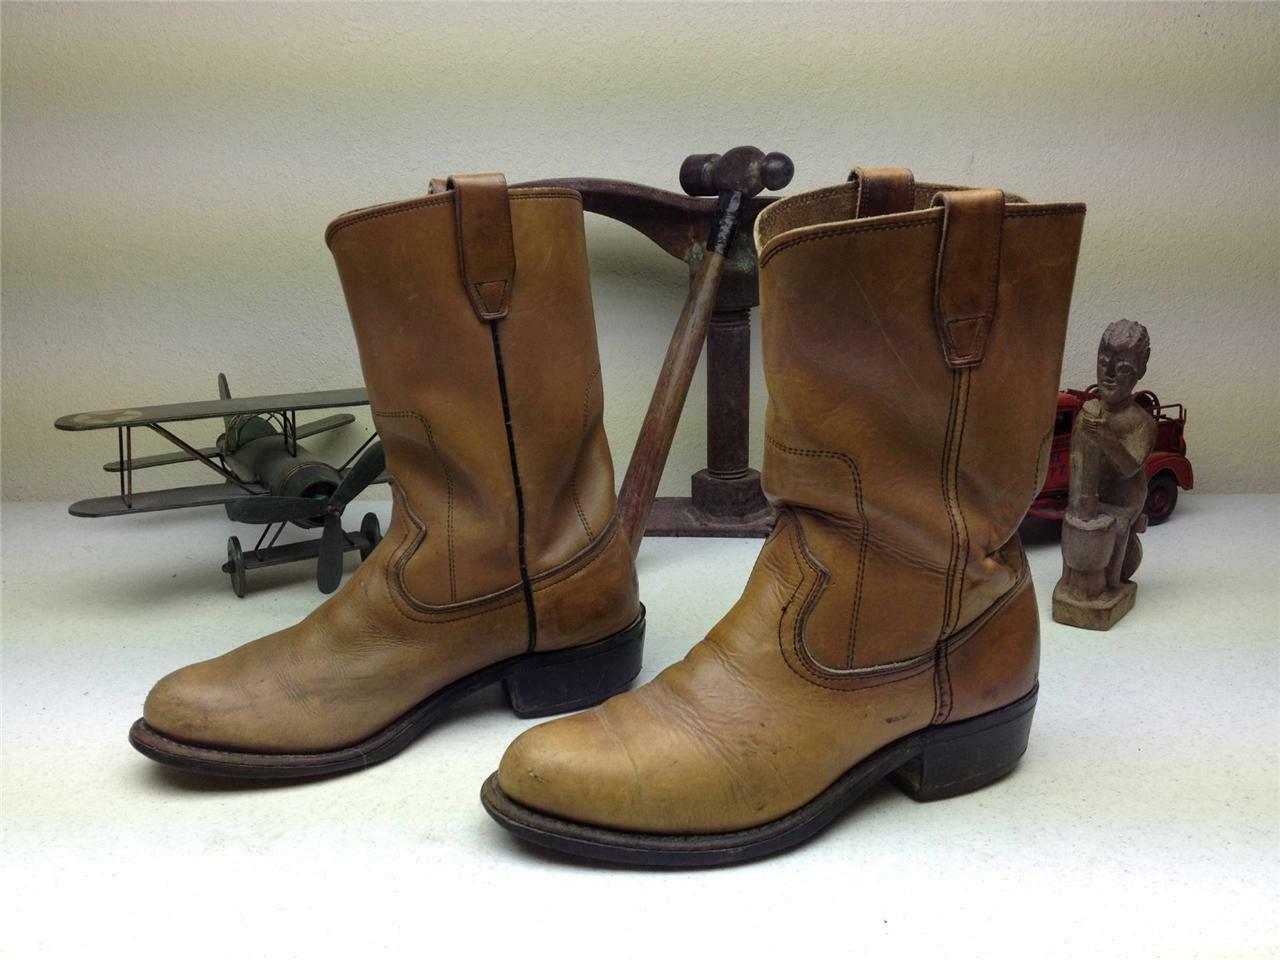 VINTAGE USA AMBER LEATHER OIL RESISTANT WESTERN ENGINEER BOOTS SIZE 7.5-8 D